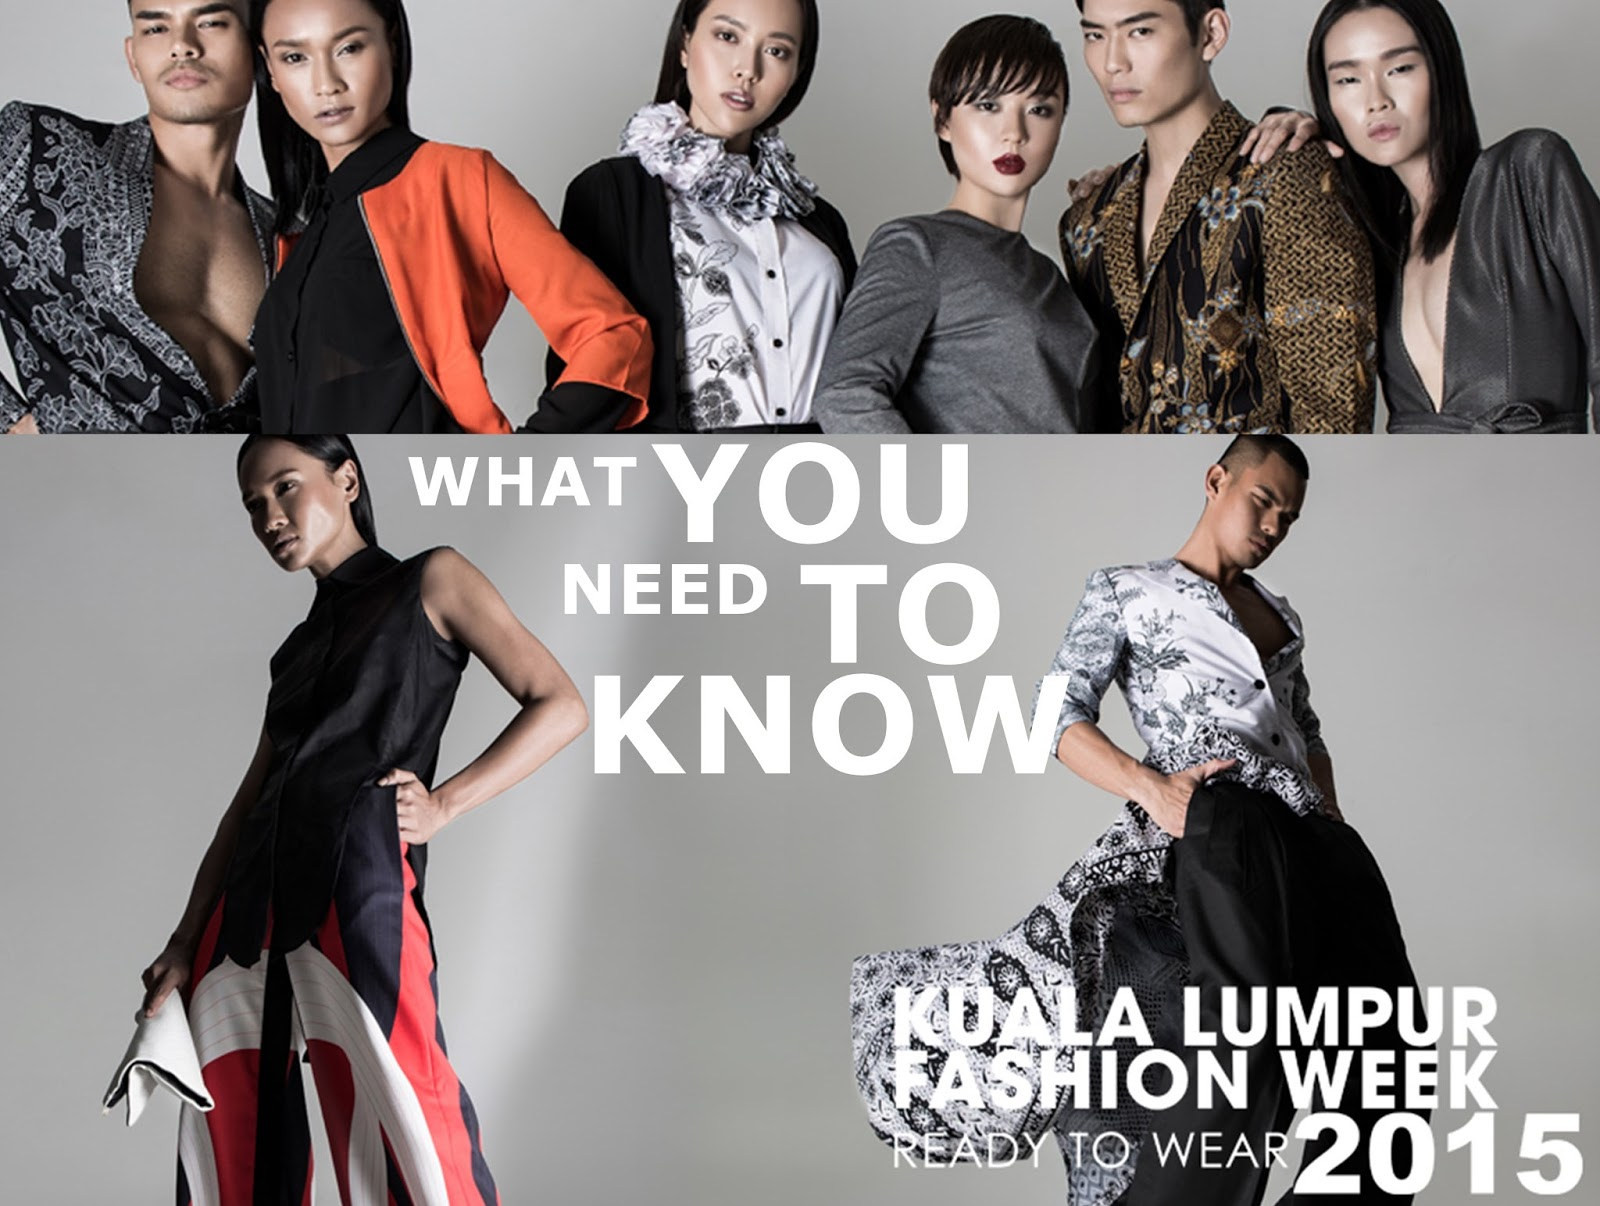 KLFW 2015: Everything You Need to Know About Kuala Lumpur Fashion Week